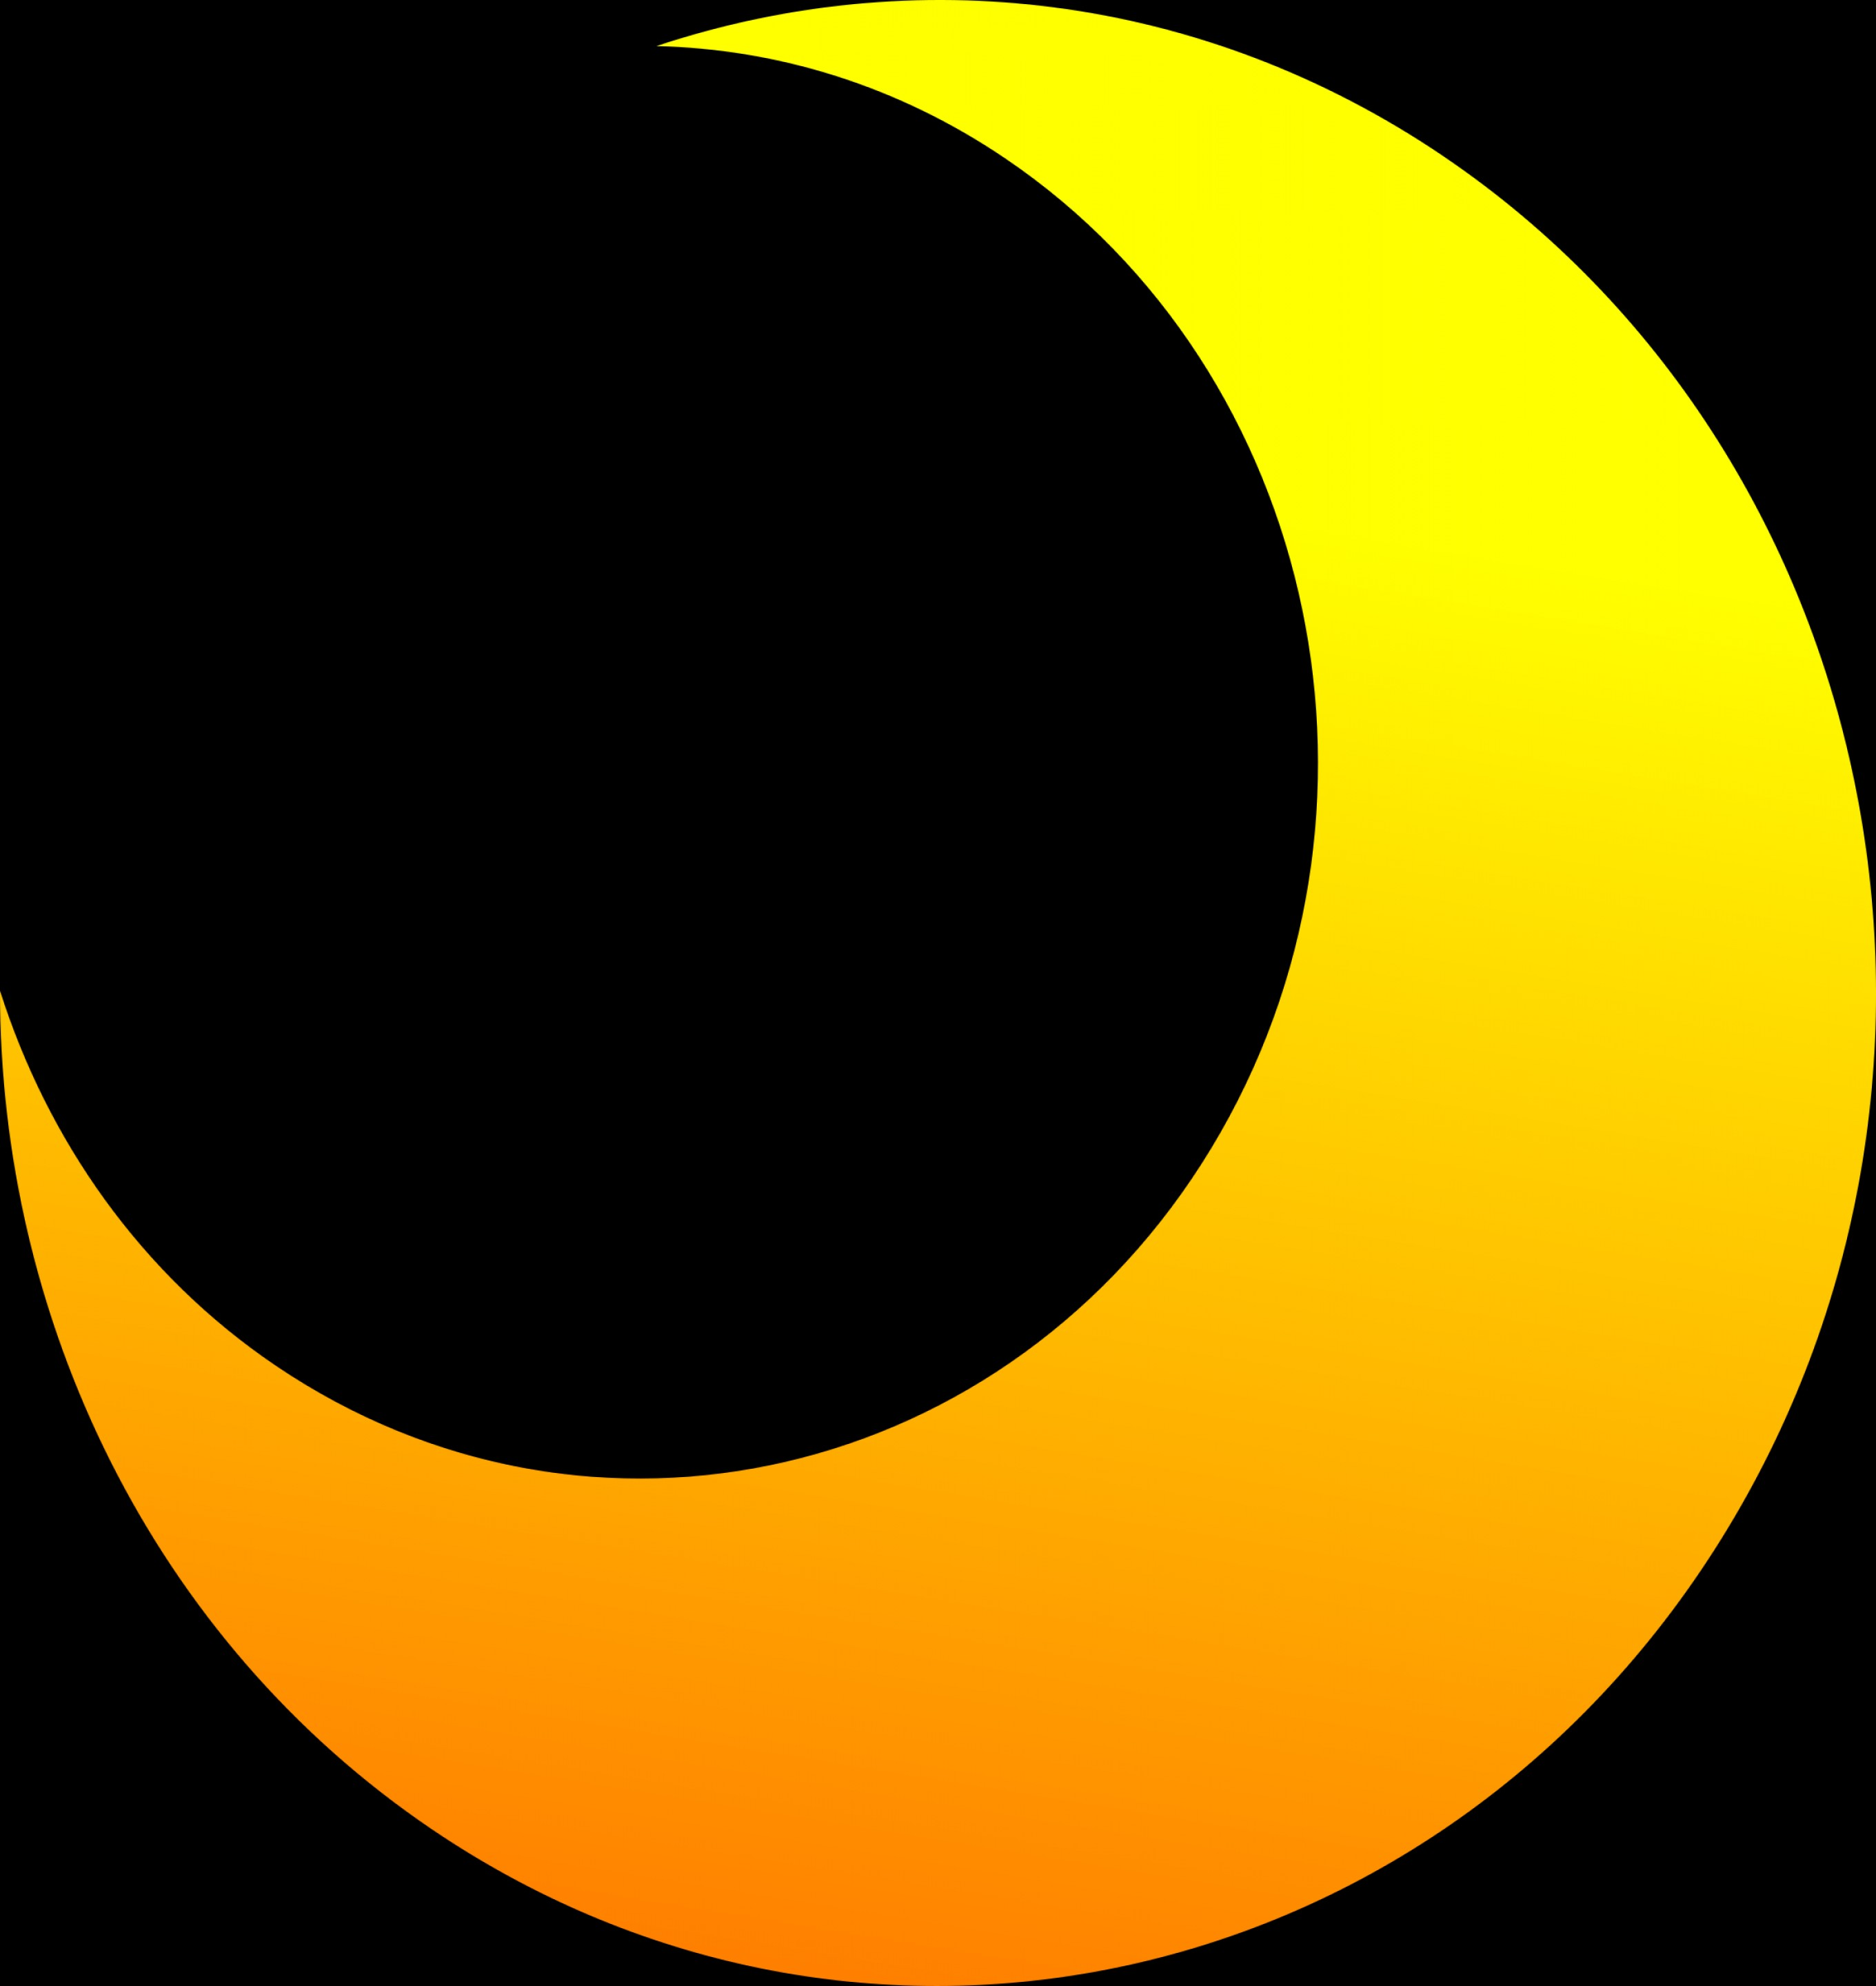 Cresent Moon Vector: Yellow Crescent Half Moon Vector Clipart